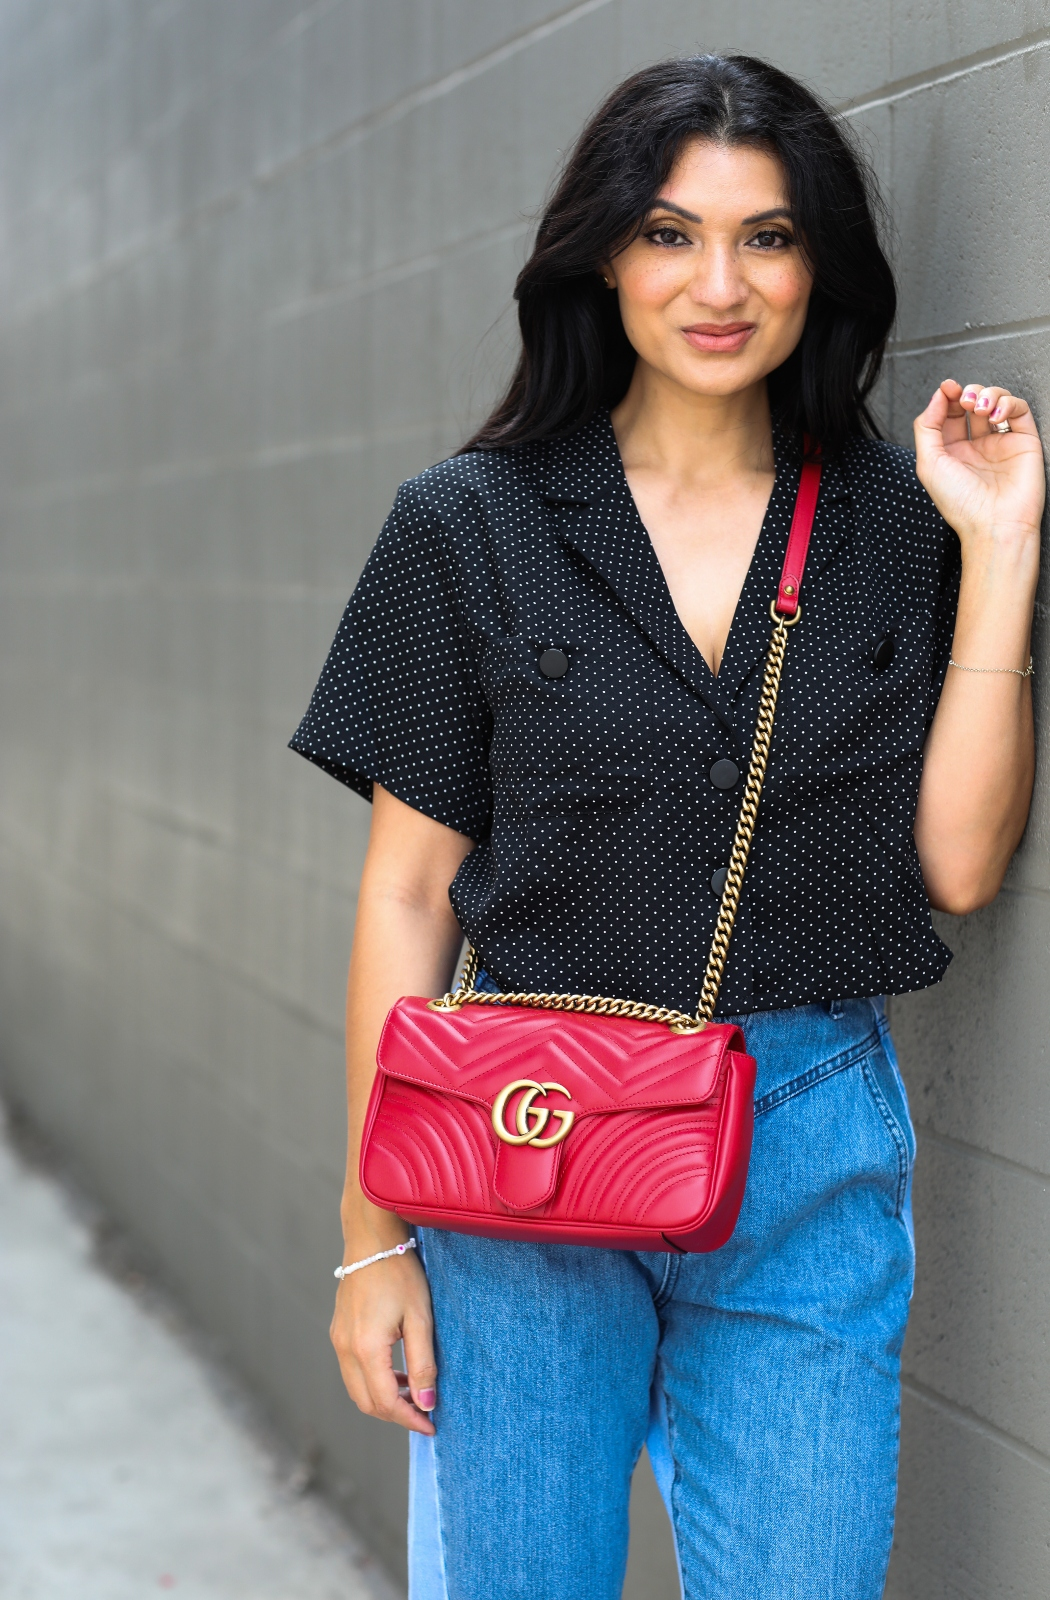 Debbie Savage Orange County California Fashion Blogger Calfskin Matelasse Small GG Marmont Shoulder Bag Hibiscus Red